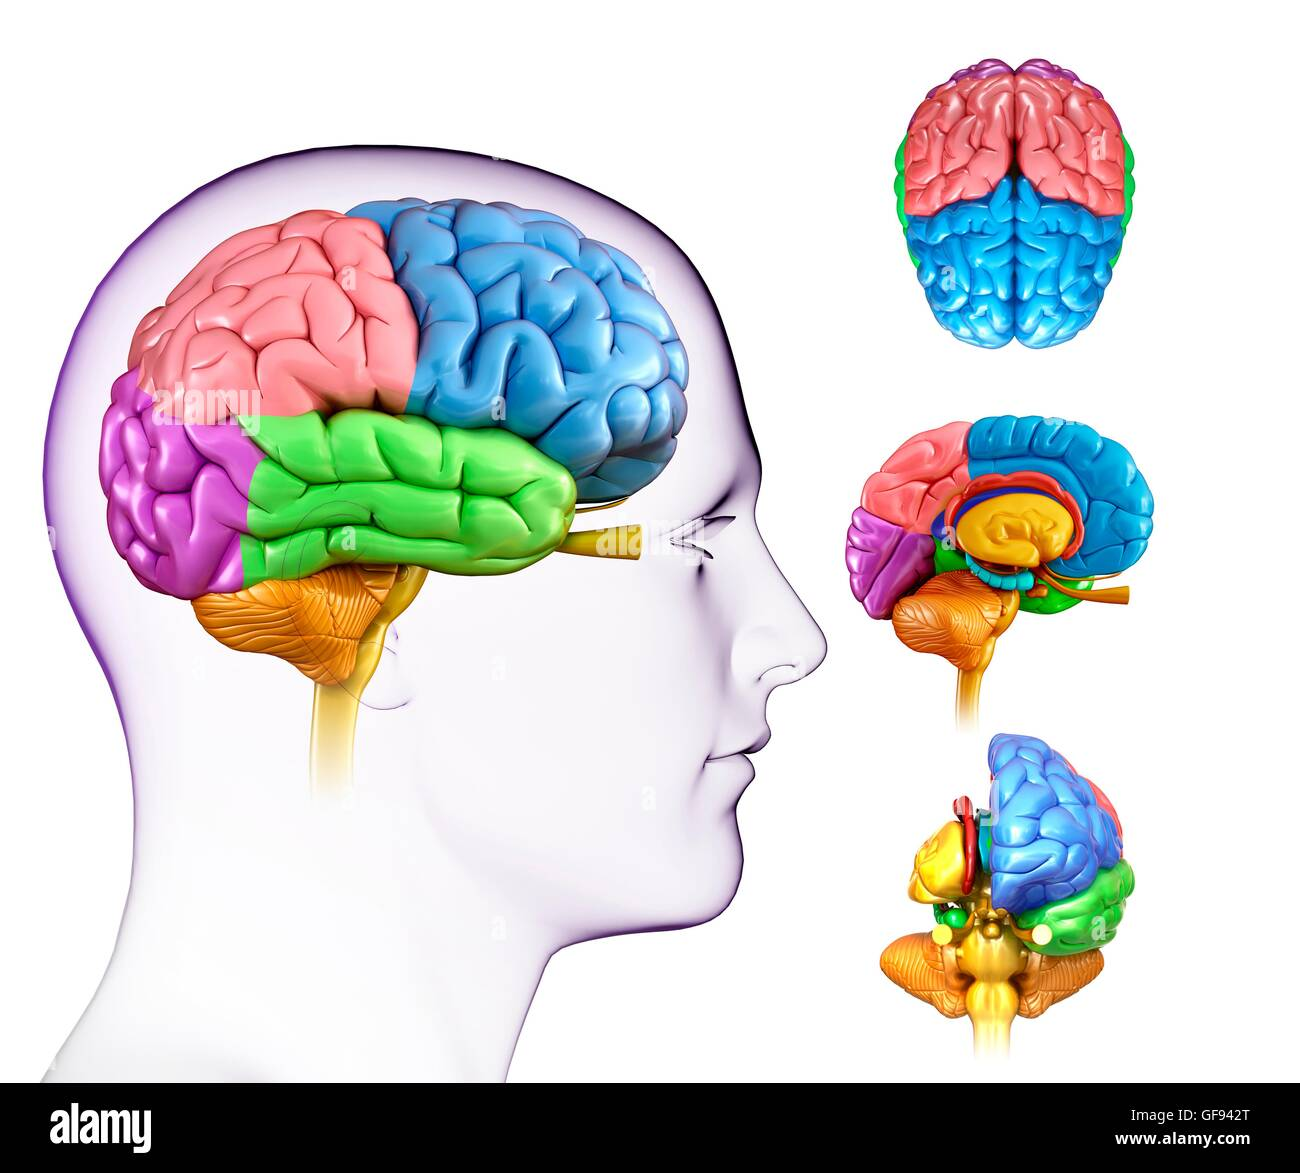 Temporal Lobes Stockfotos & Temporal Lobes Bilder - Alamy